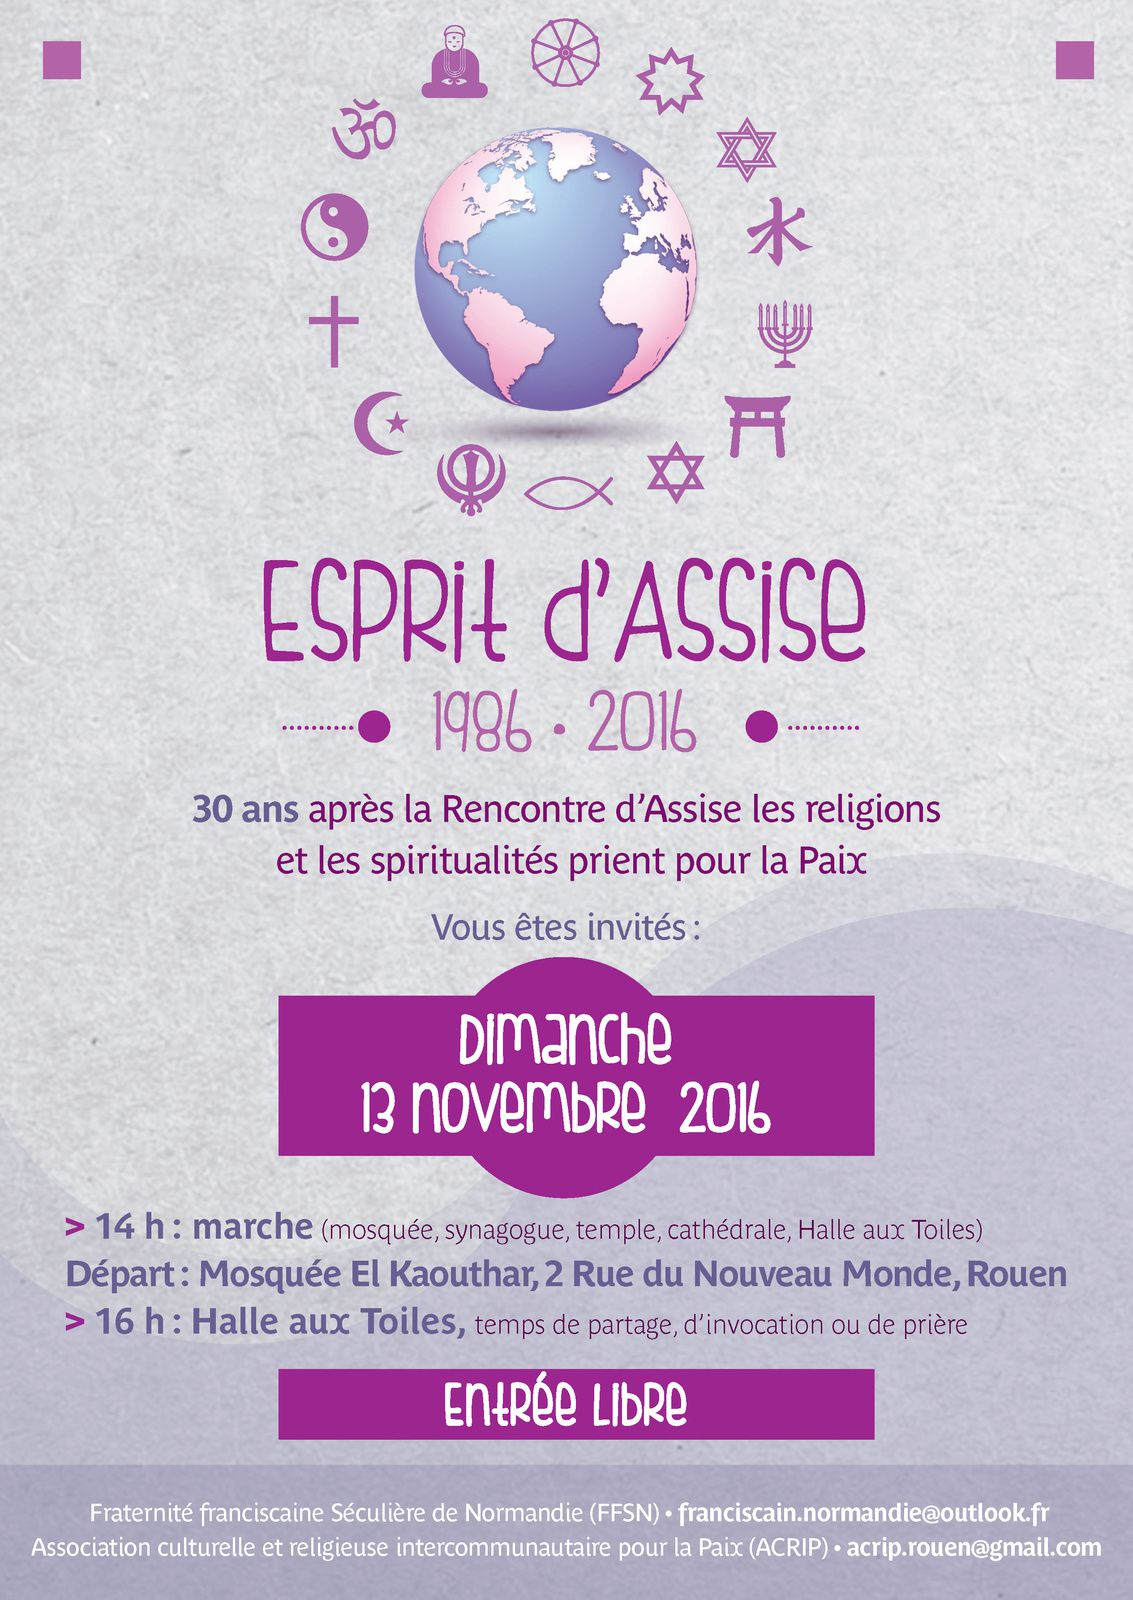 Rencontres d'assise 2016